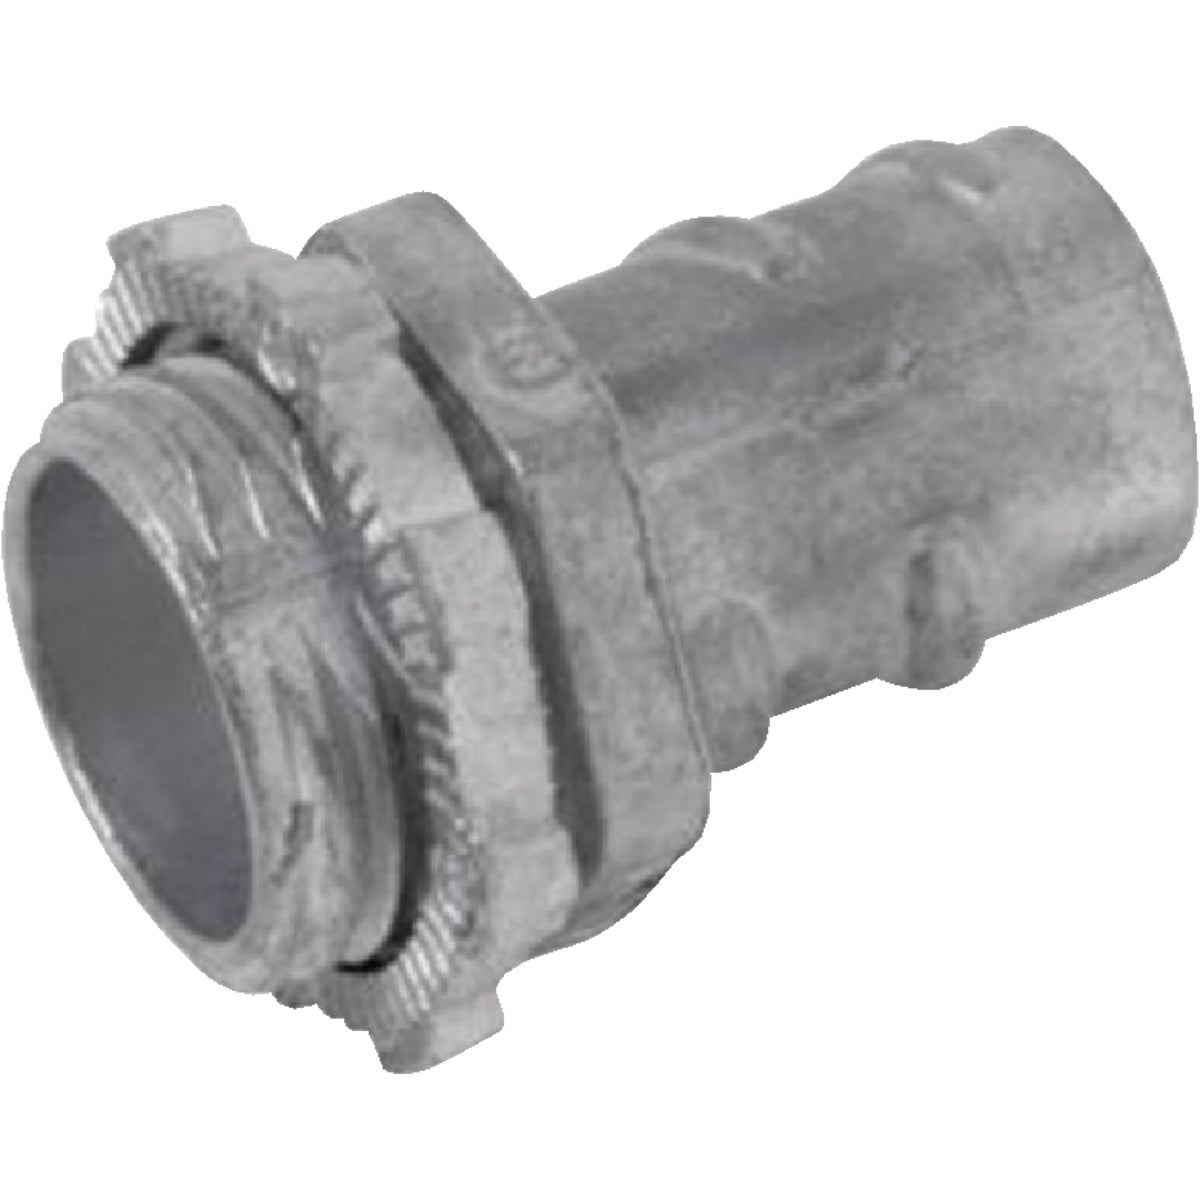 "3/4"" FLEX CONNECTOR - XC2421 by Thomas & Betts"